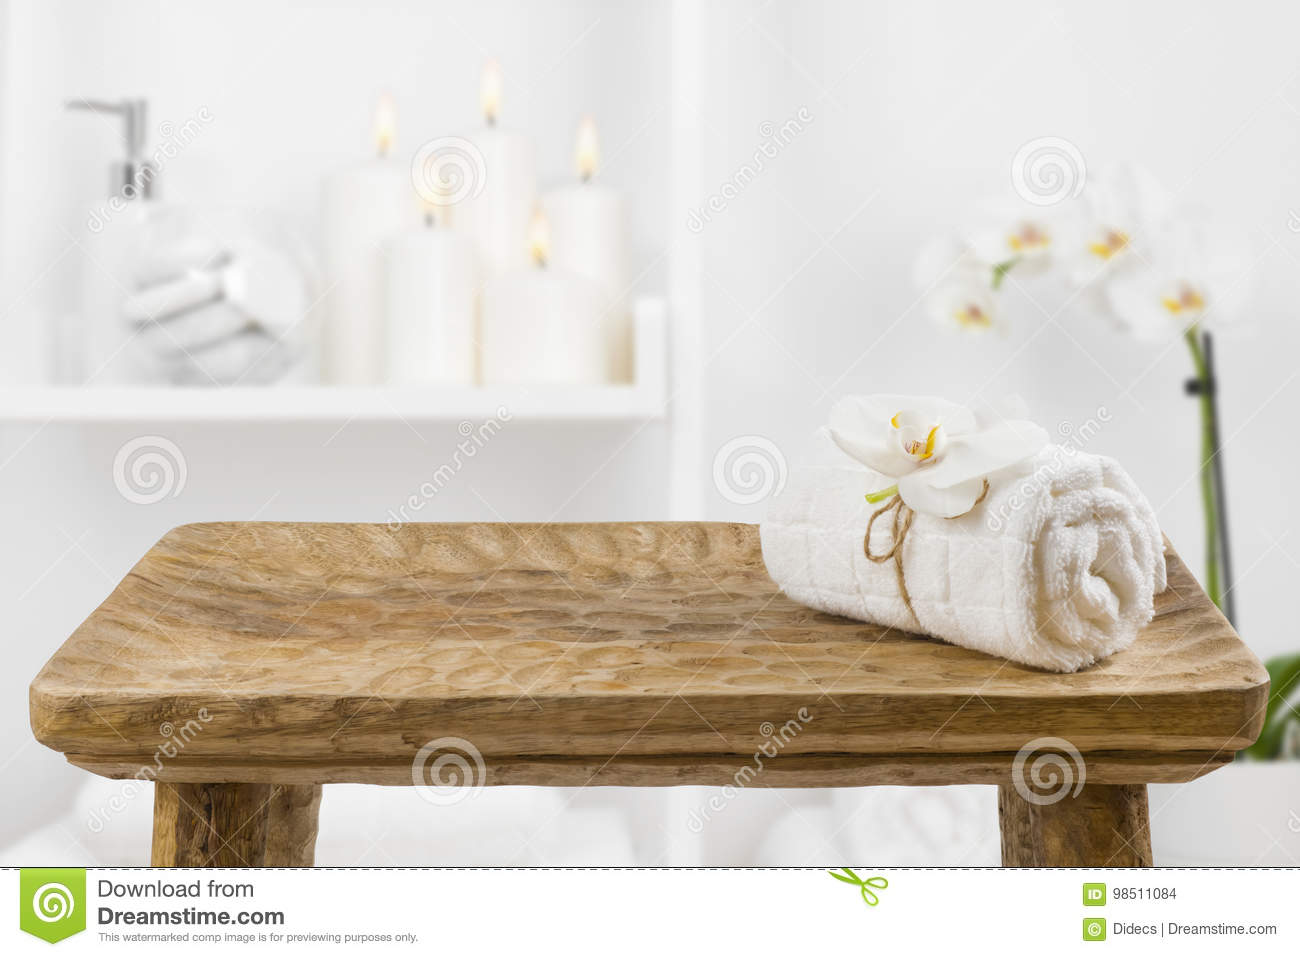 Wooden table with spa towel on blurred bathroom shelf background